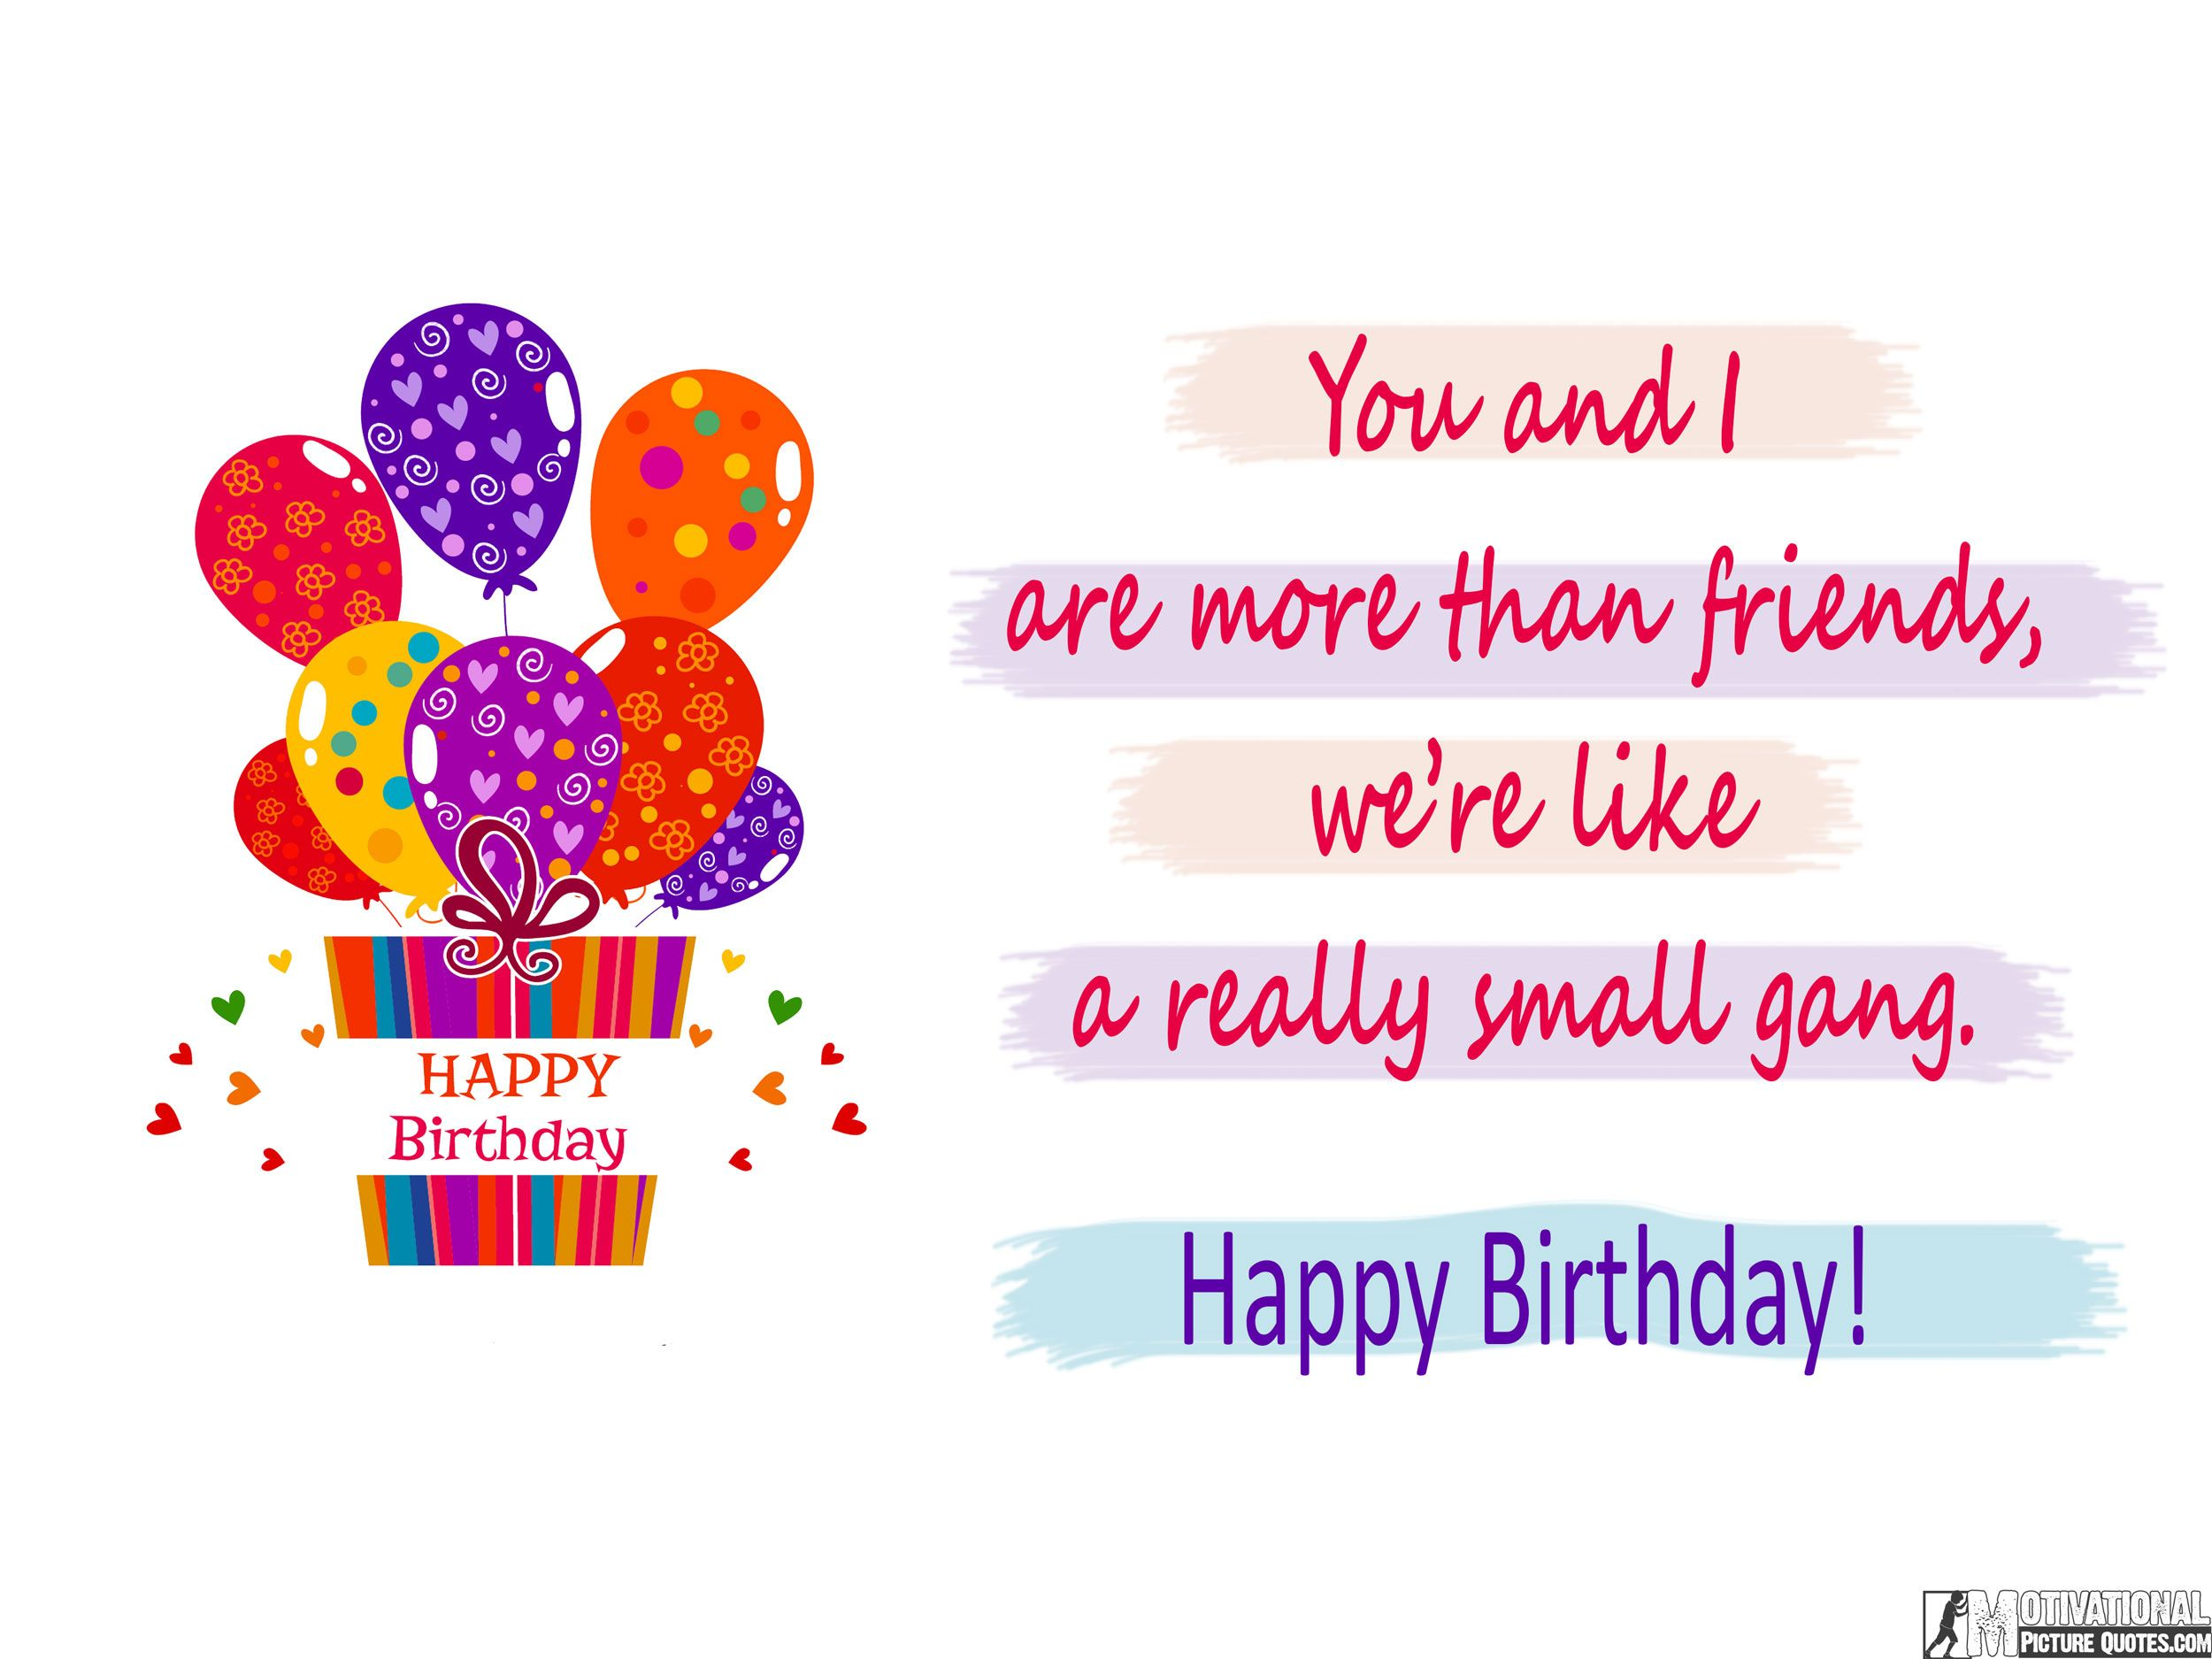 Inspirational Birthday Quotes Images With Cute Wishing Messages Motivational Picture Happy Birthday Quotes Friend Birthday Quotes Best Happy Birthday Quotes